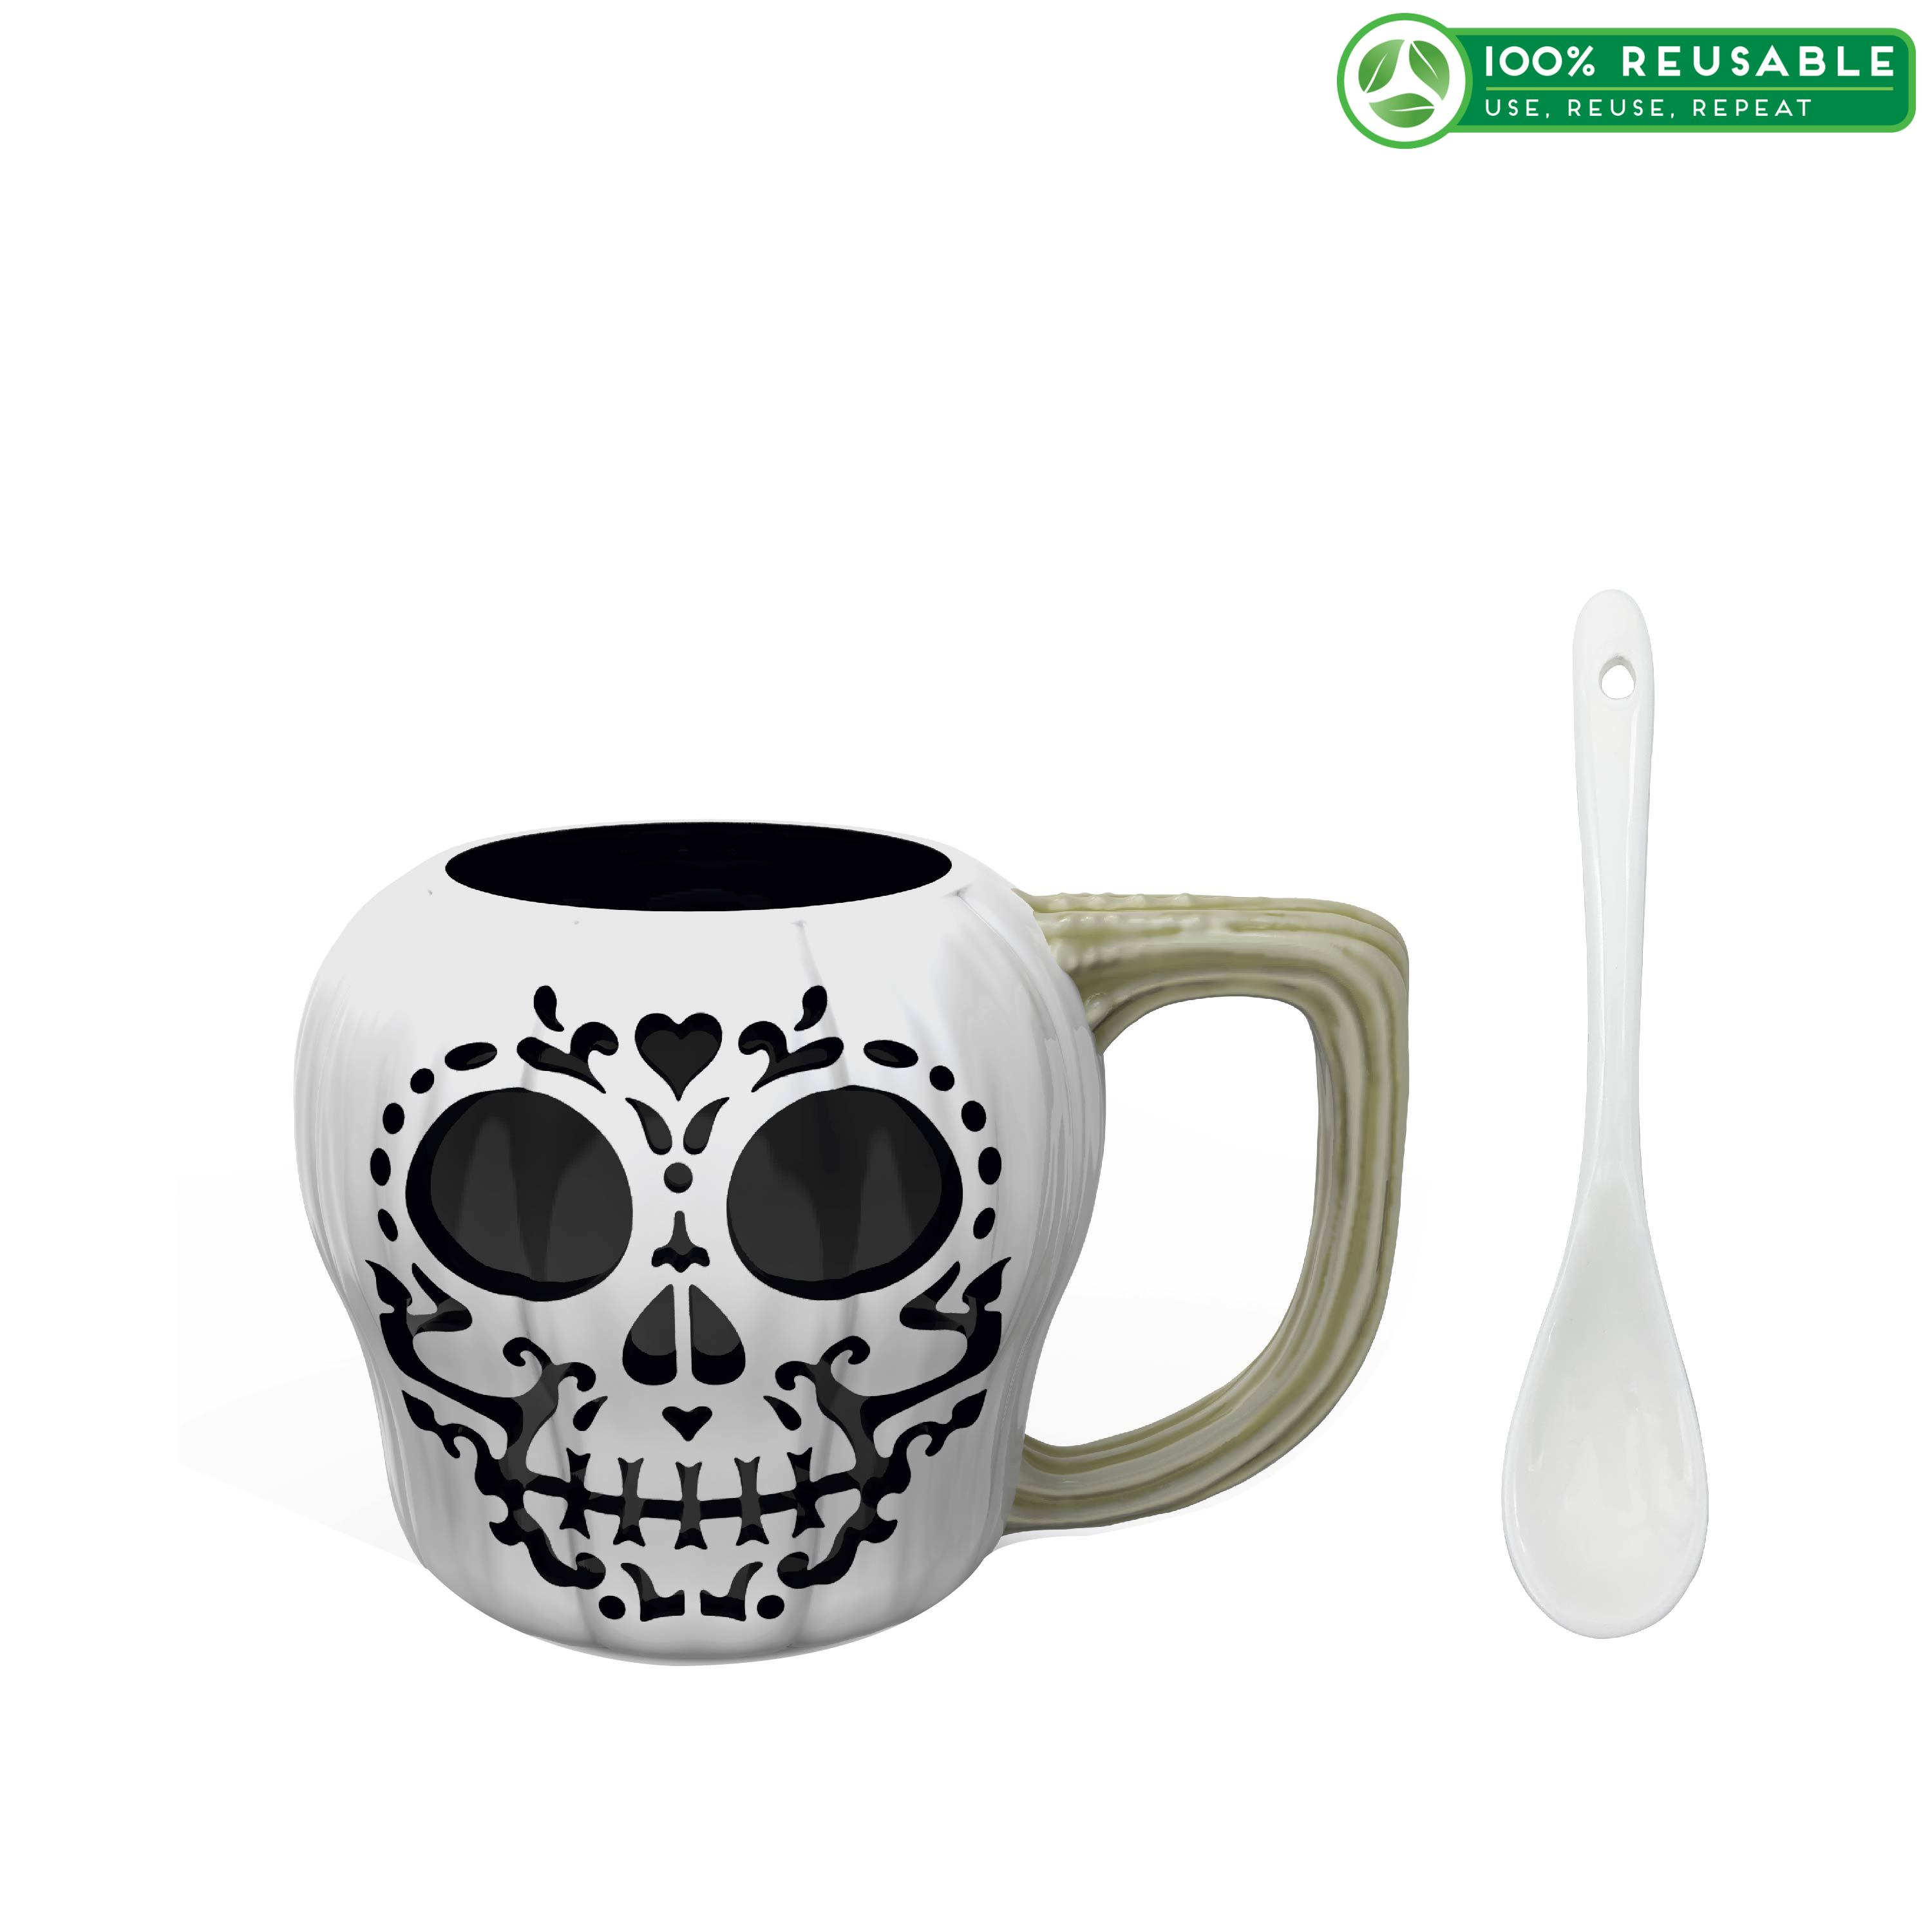 Halloween 15 ounce Coffee Mug and Spoon, Sugar Skull slideshow image 1